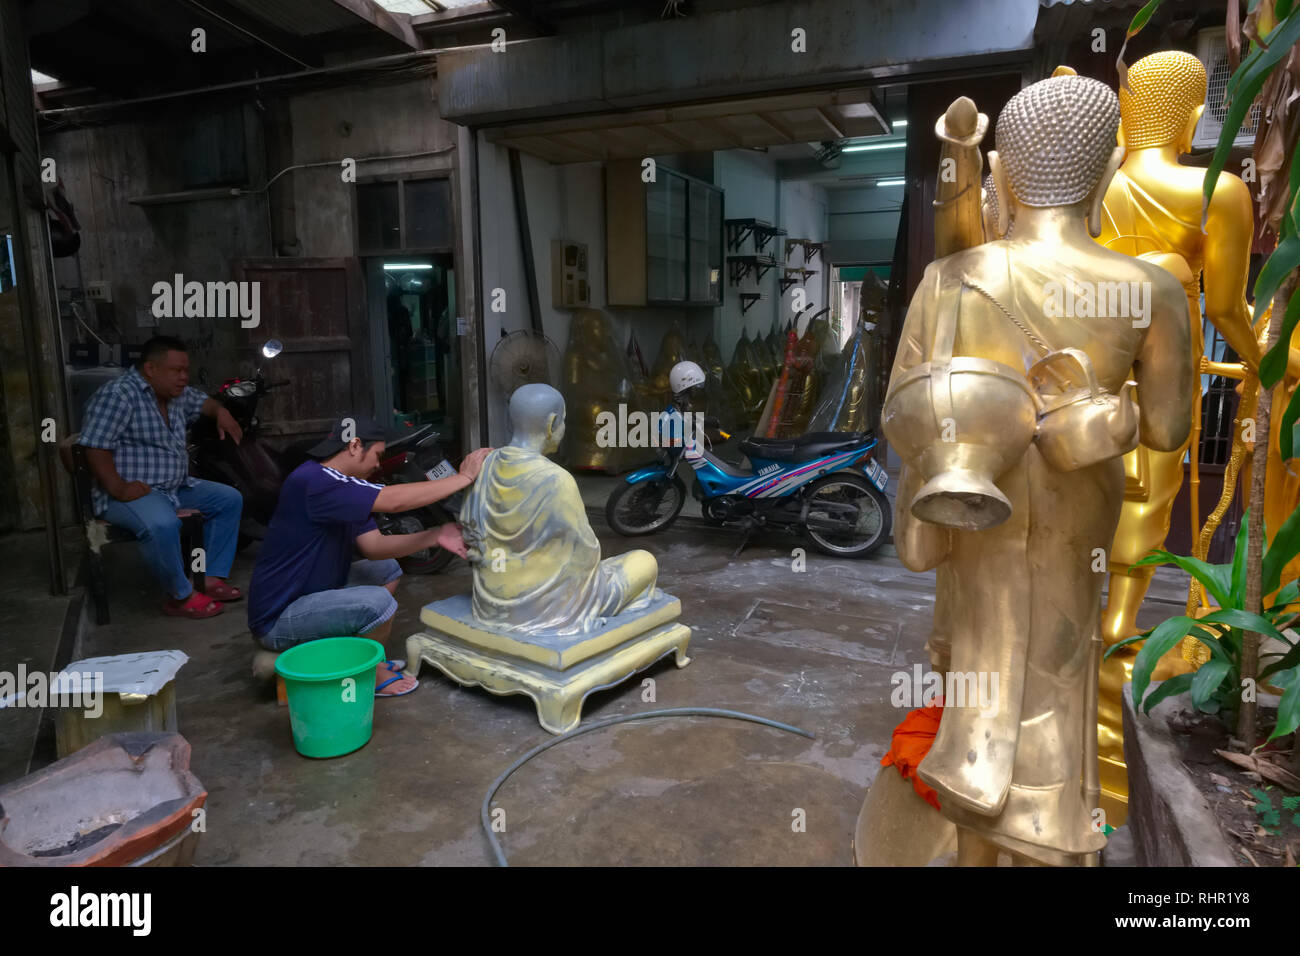 A craftsman in a backstreet off Bamrung Muang Rd. in Bangkok, Thailand, puts finishing touches to the statue of a revered Buddhist monk - Stock Image